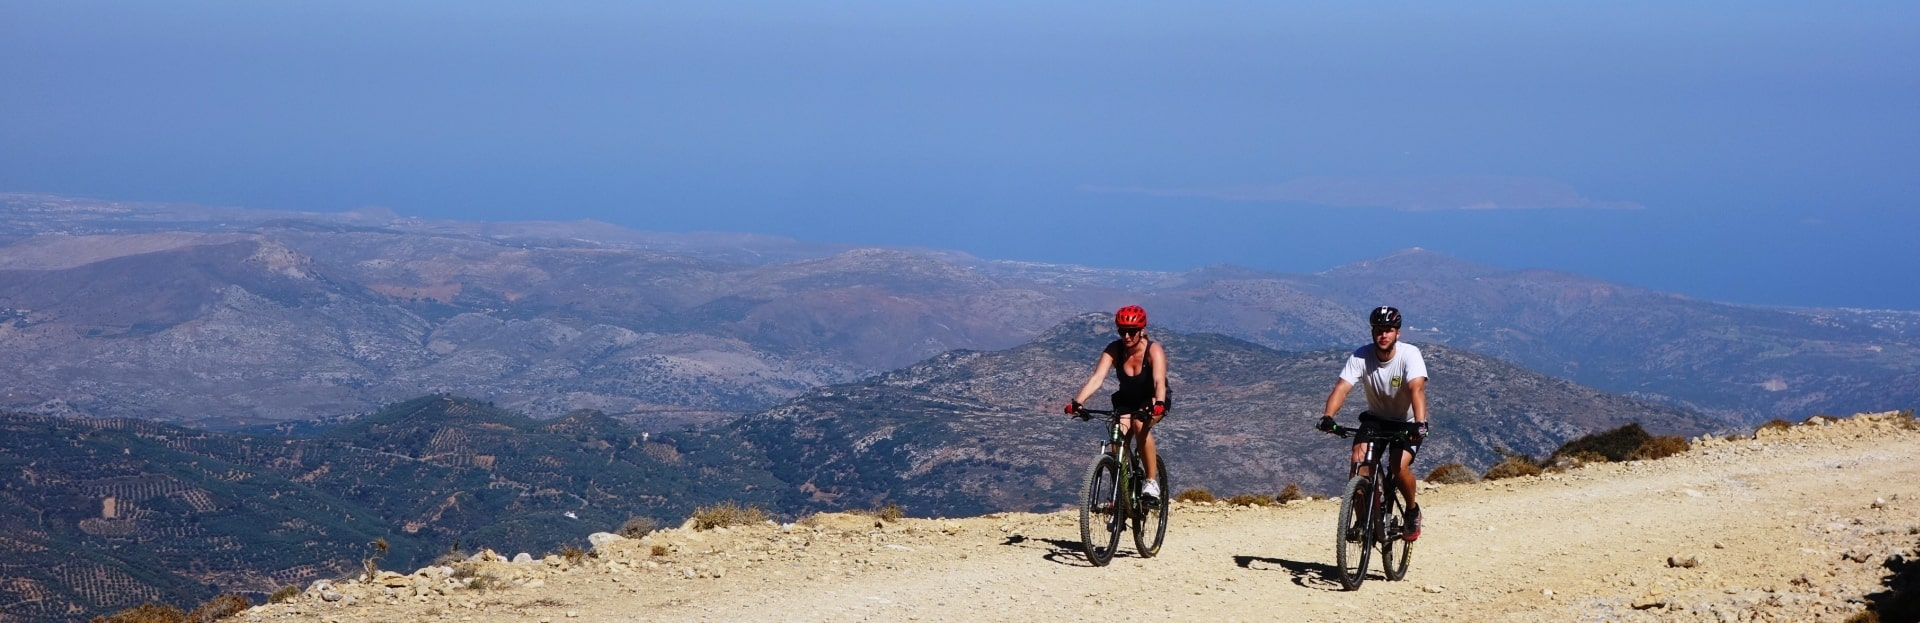 Lasithi panorama breathtaking views that you have never seen before